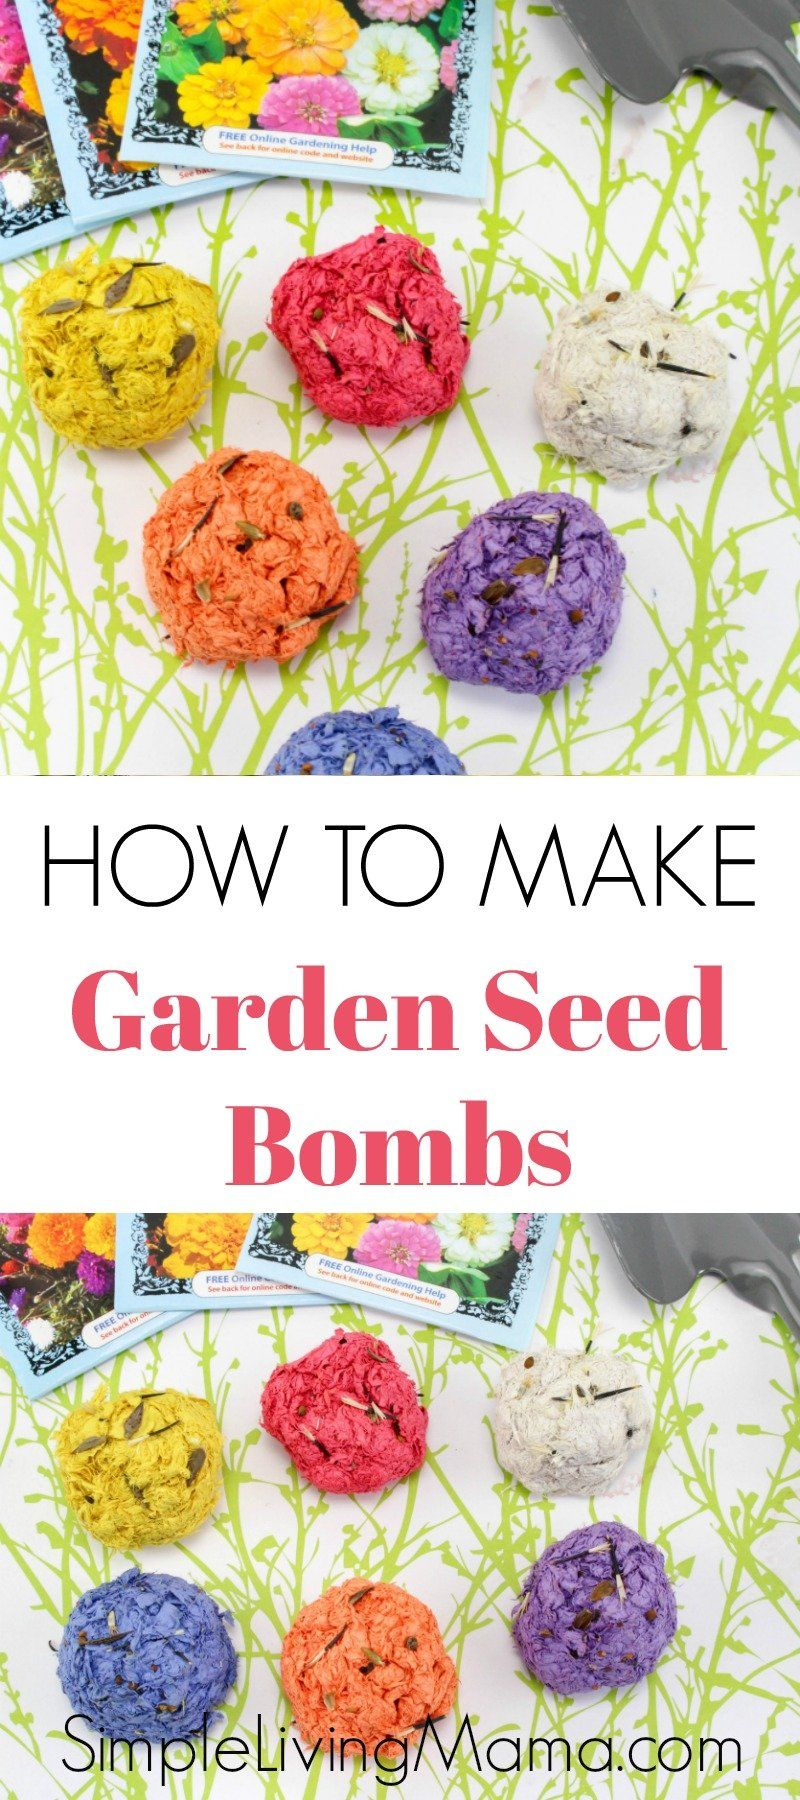 How To Make Garden Seed Bombs - Simple Living Mama